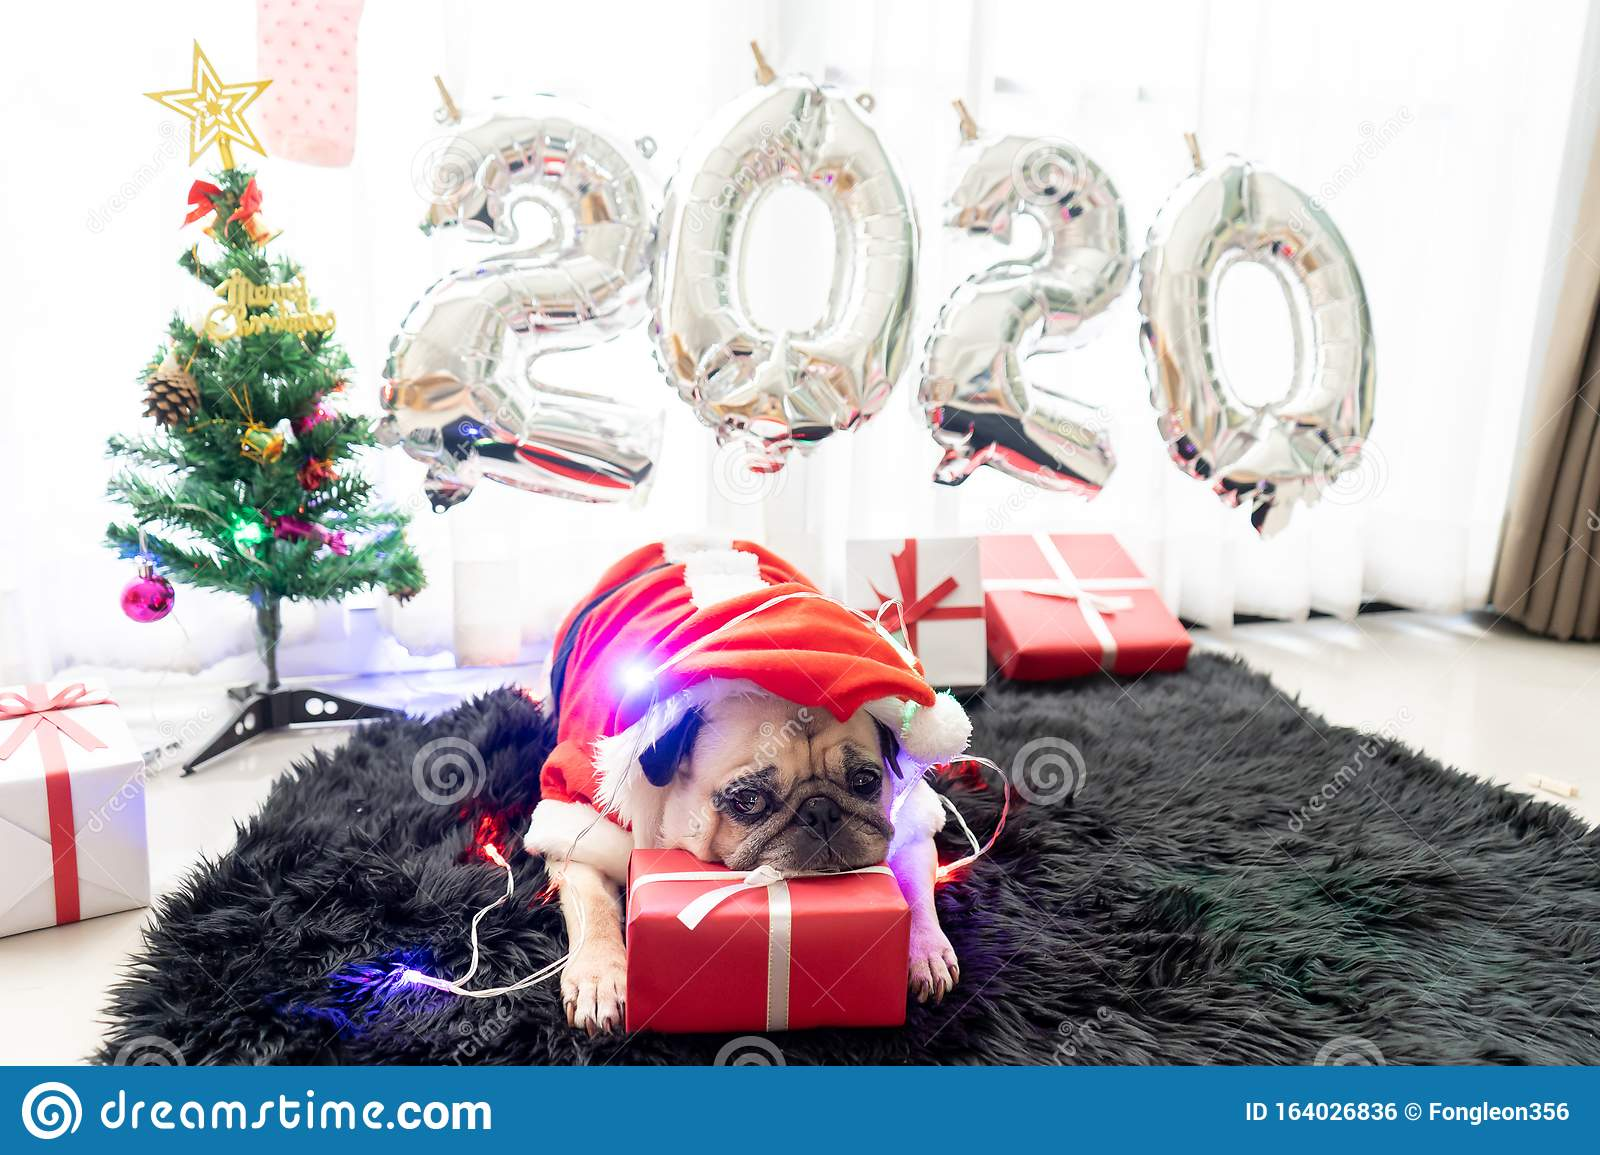 New Puppy For Christmas 2020 December Happy New Year 2020, Merry Christmas, Holidays And Celebration